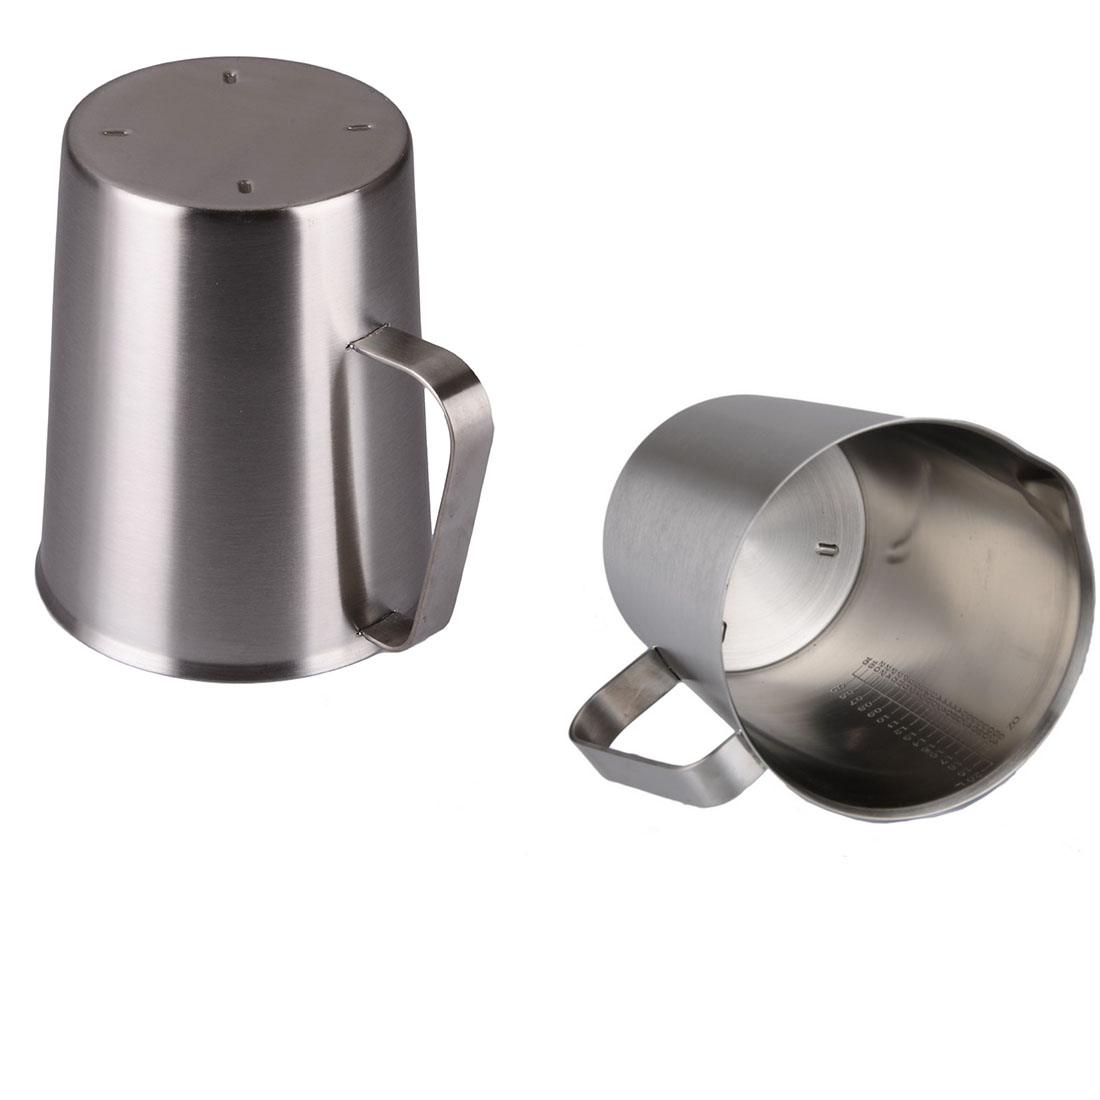 21273574f07 Best Sale 500ml/1000ml/1500ml Stainless Steel Cup Graduated Glass Liquid  Measuring Cups High Quality Kitchen Useful Tools-in Mugs from Home & Garden  on ...